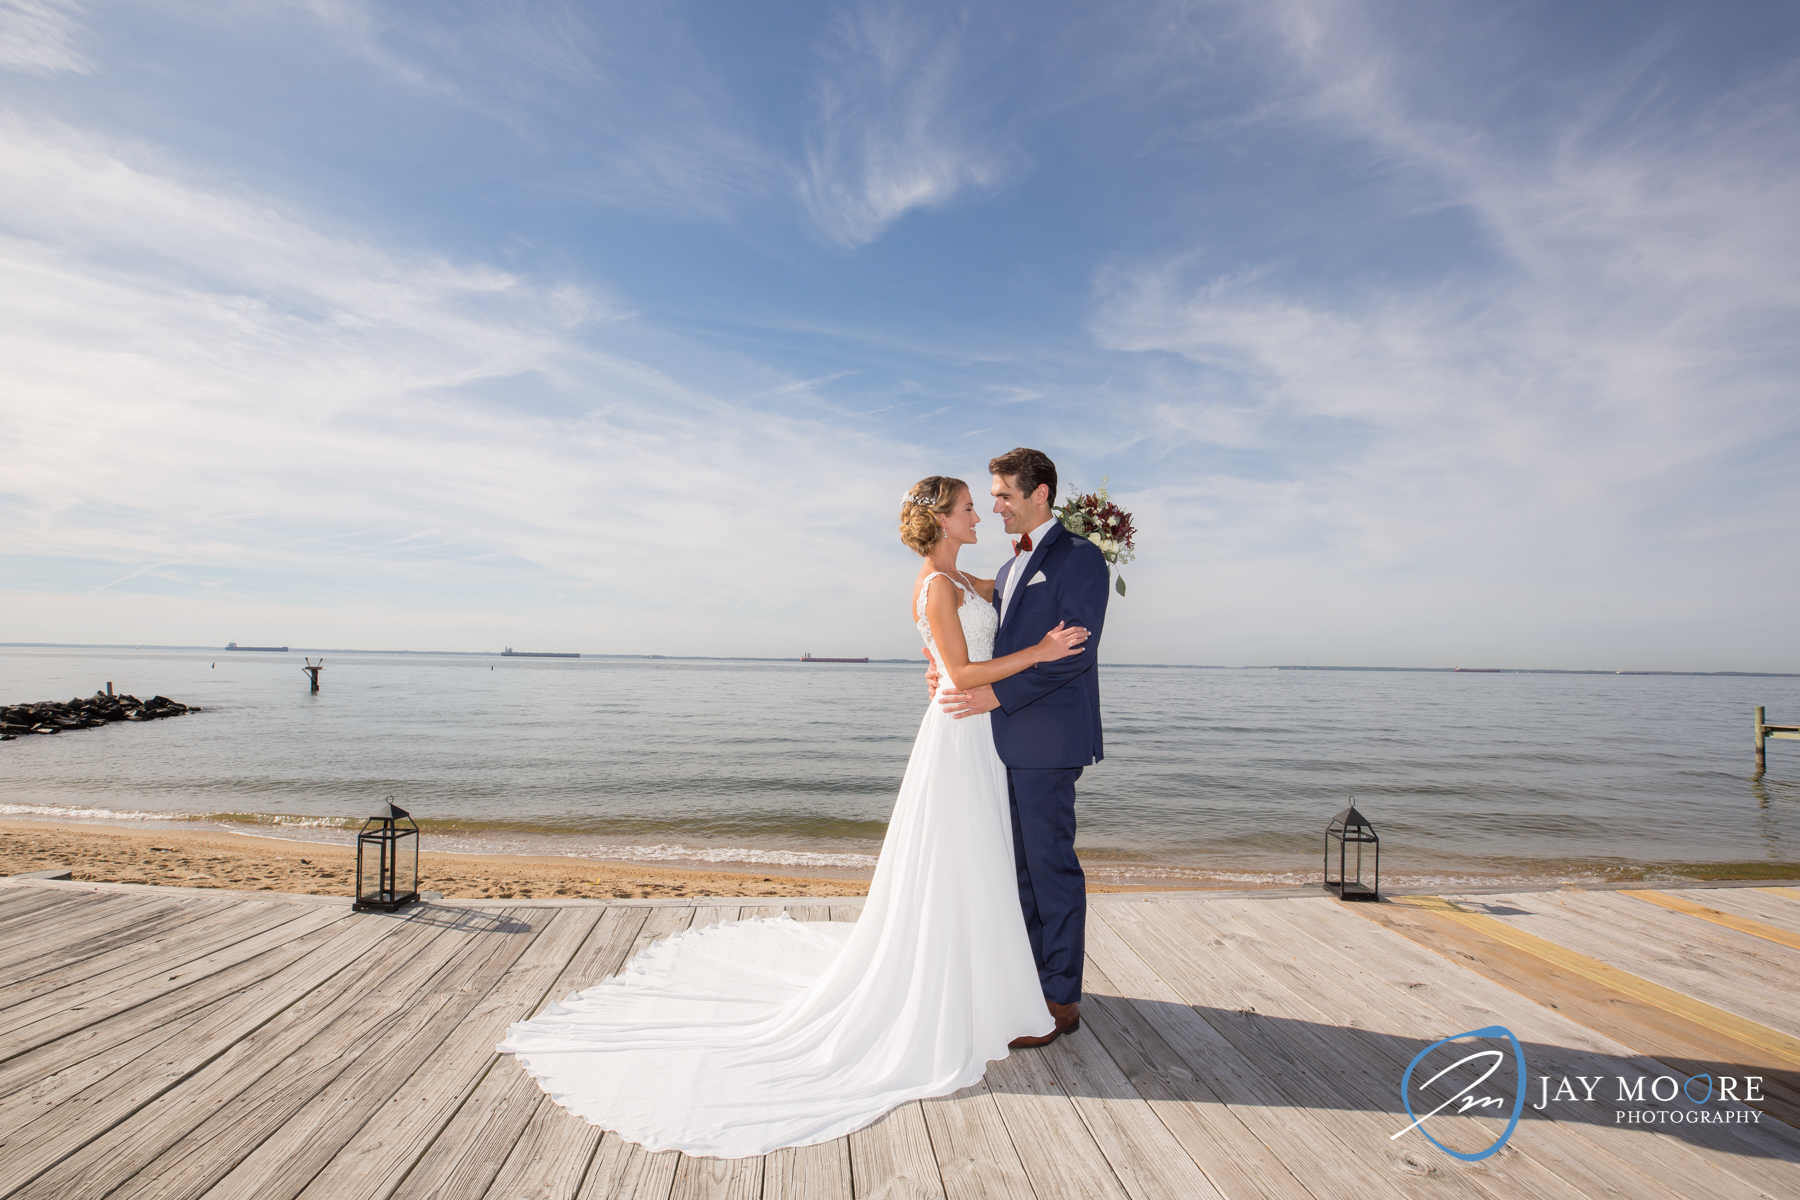 102117 MD Colleen McArdle + Matthew - Jay Moore Photography AF LS_0175.jpg